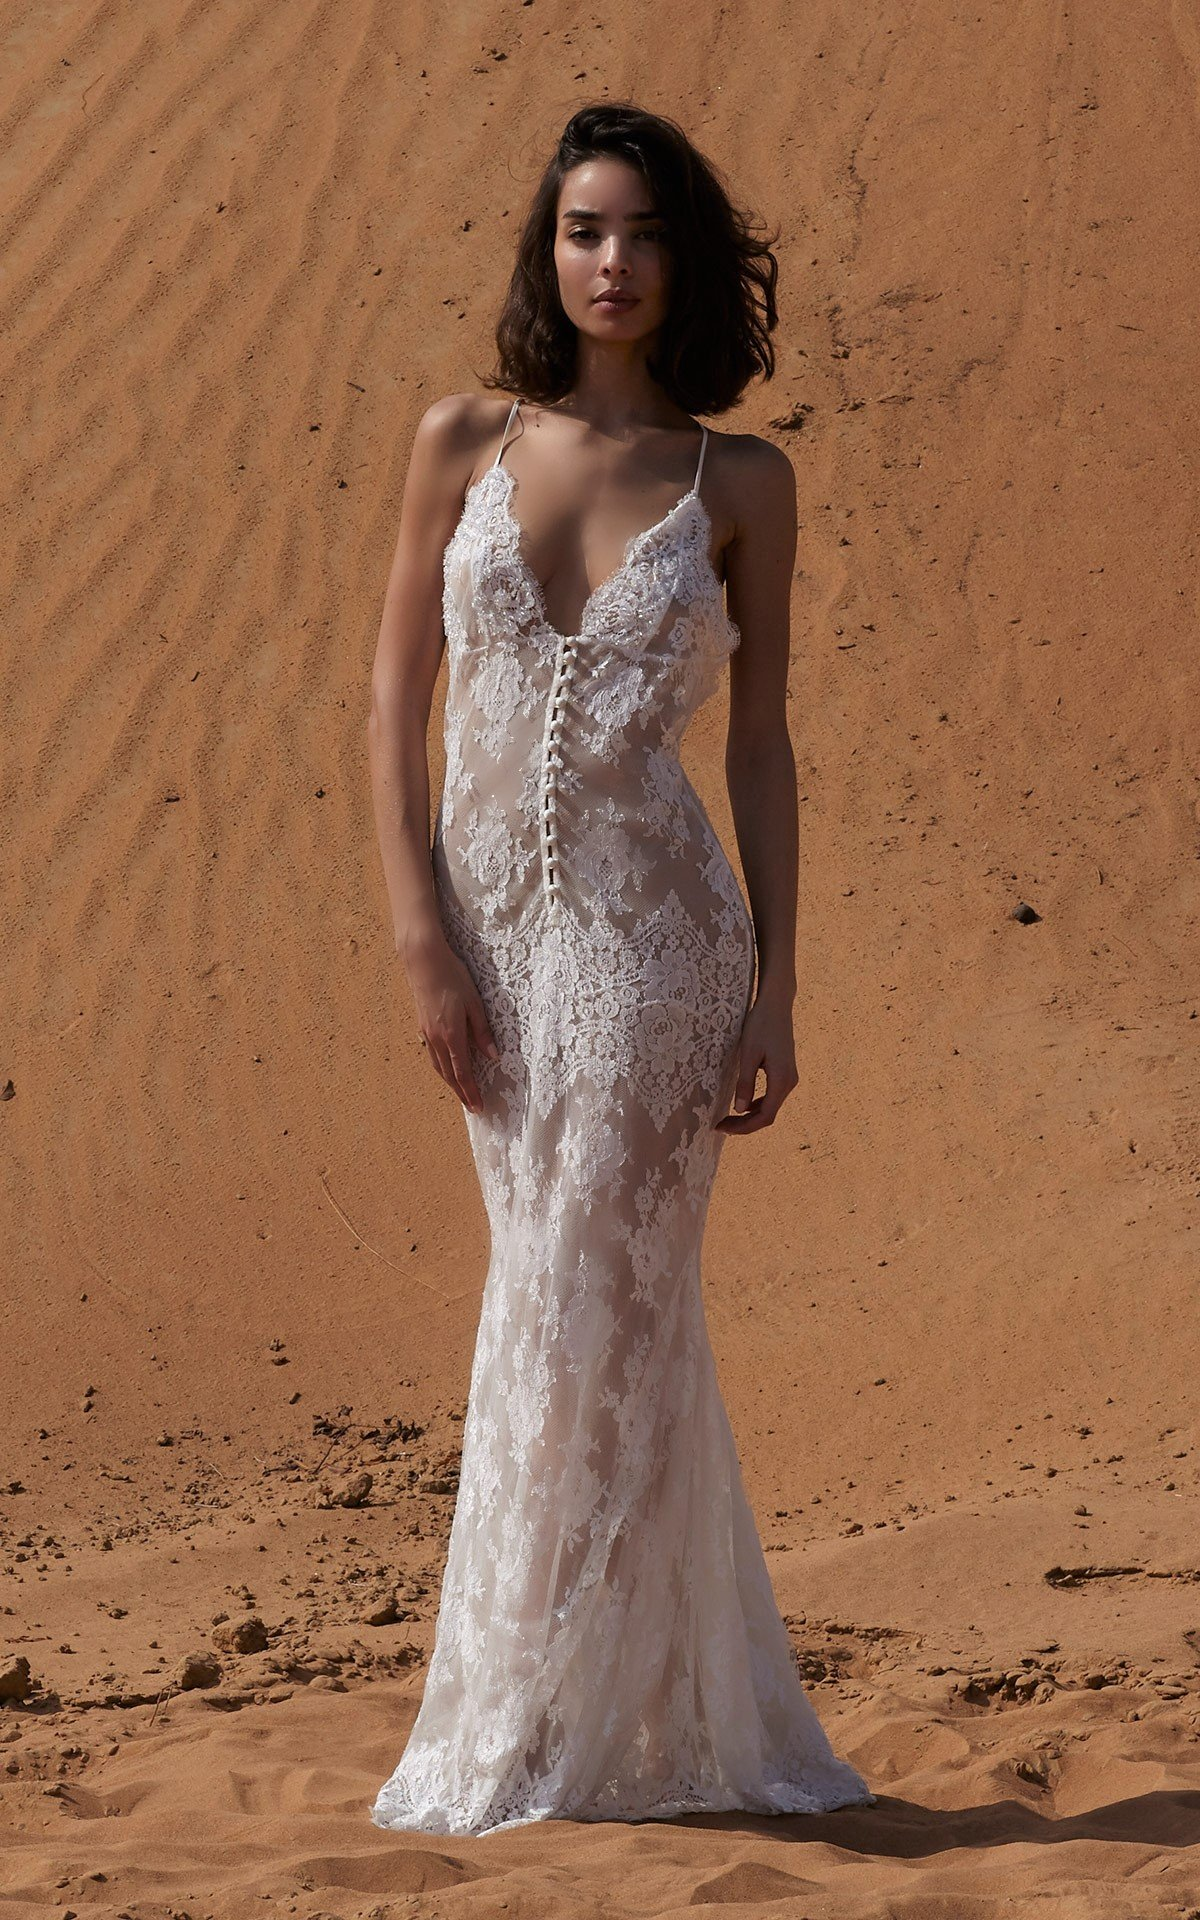 ROSAMOSARIO_A-princess-called-Meera_Fattima-the-young-bride_Embroidered-lace-tail-dress_White_1